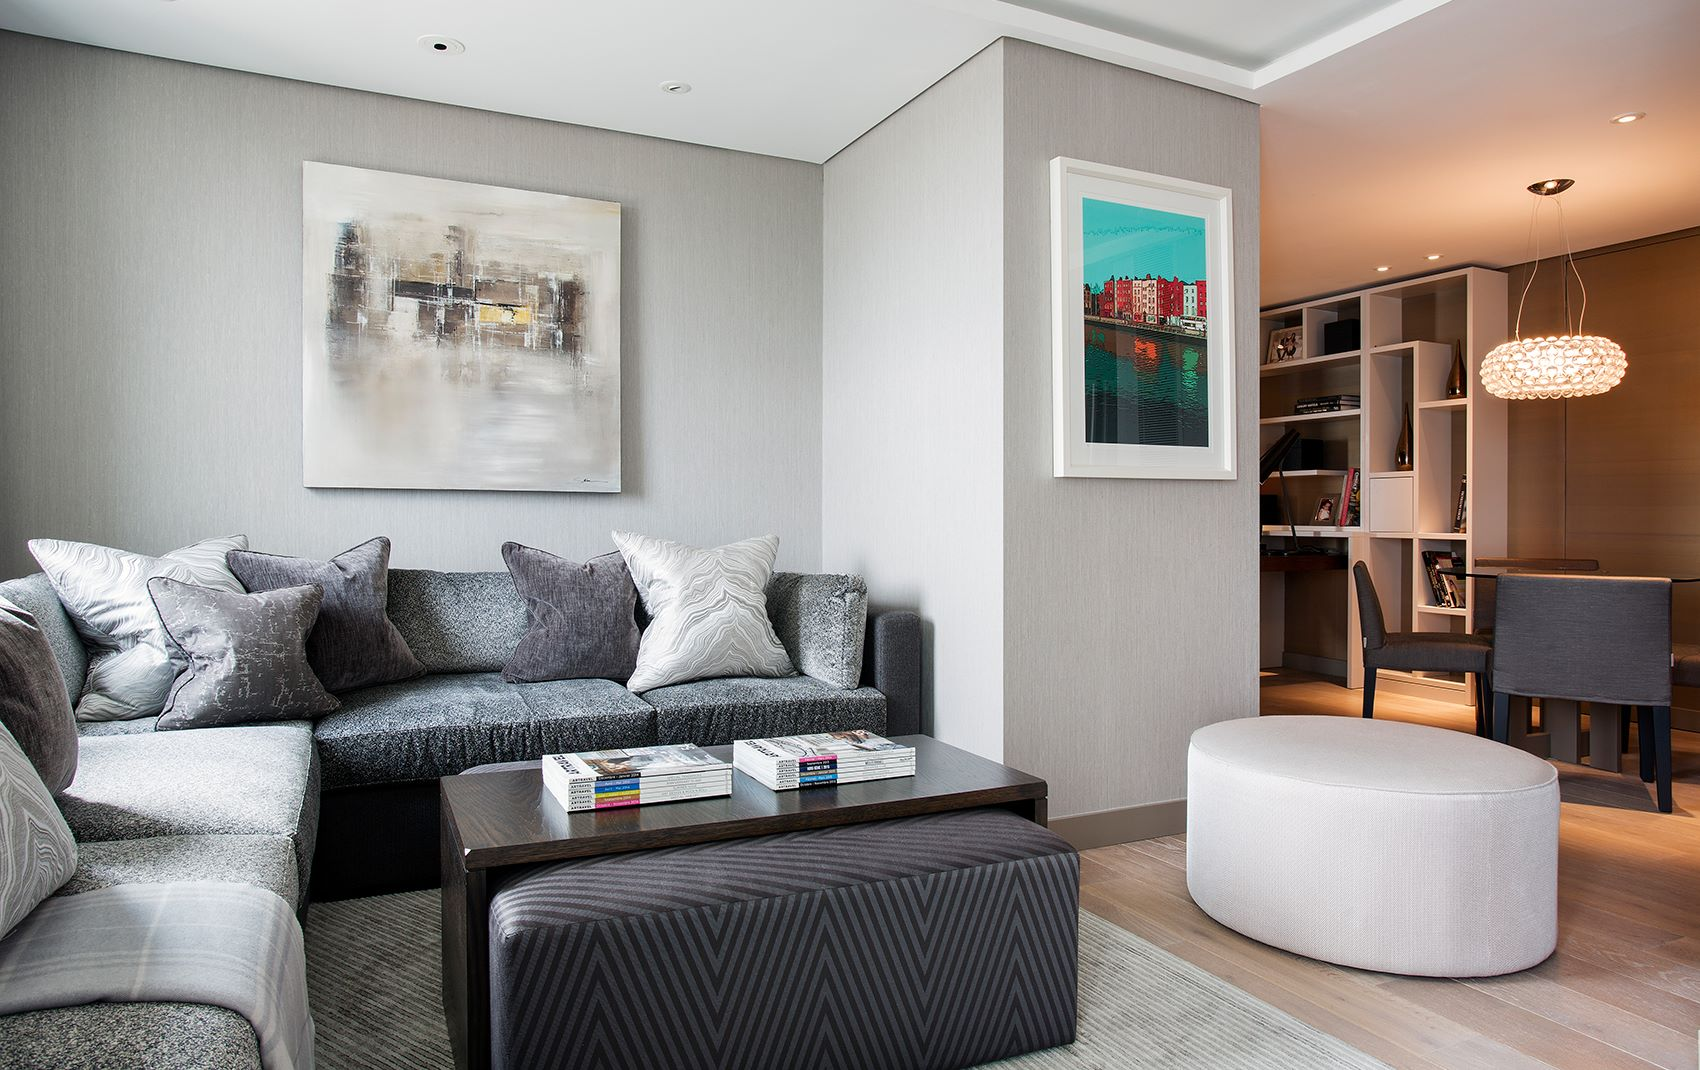 west london penthouse - corner nook with coffee table